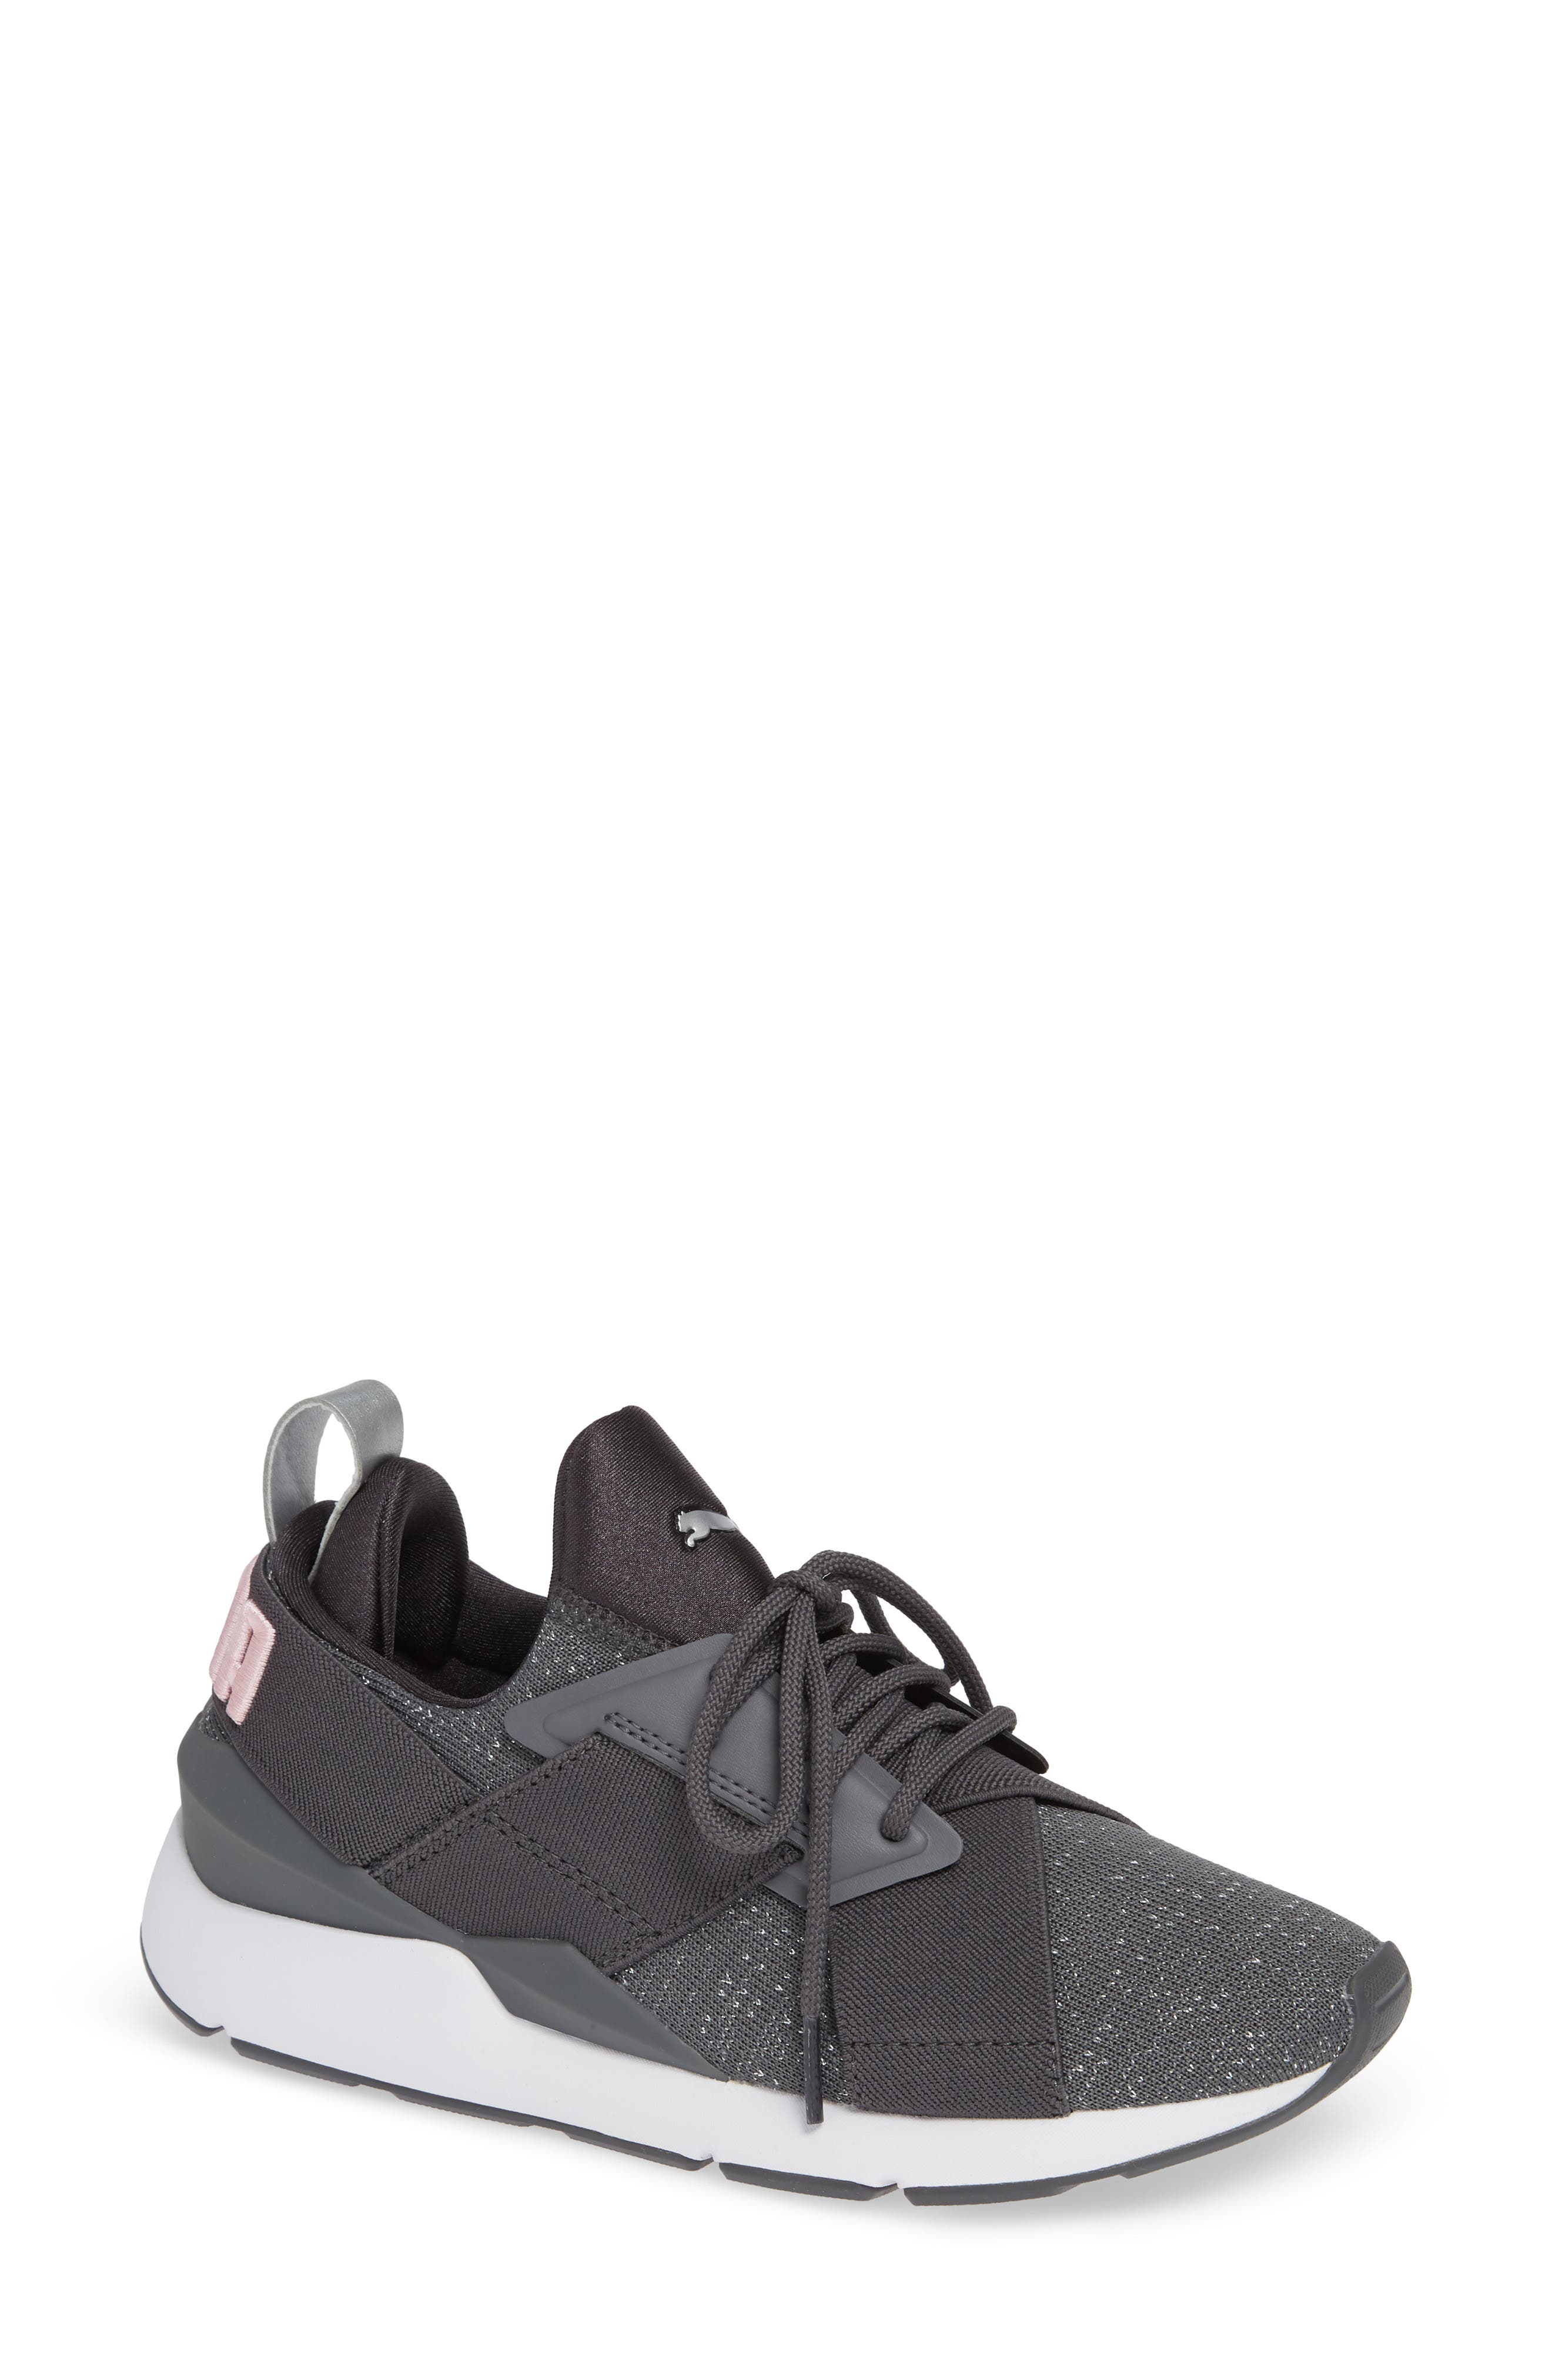 Muse Knit Sneaker,                         Main,                         color, IRON GATE